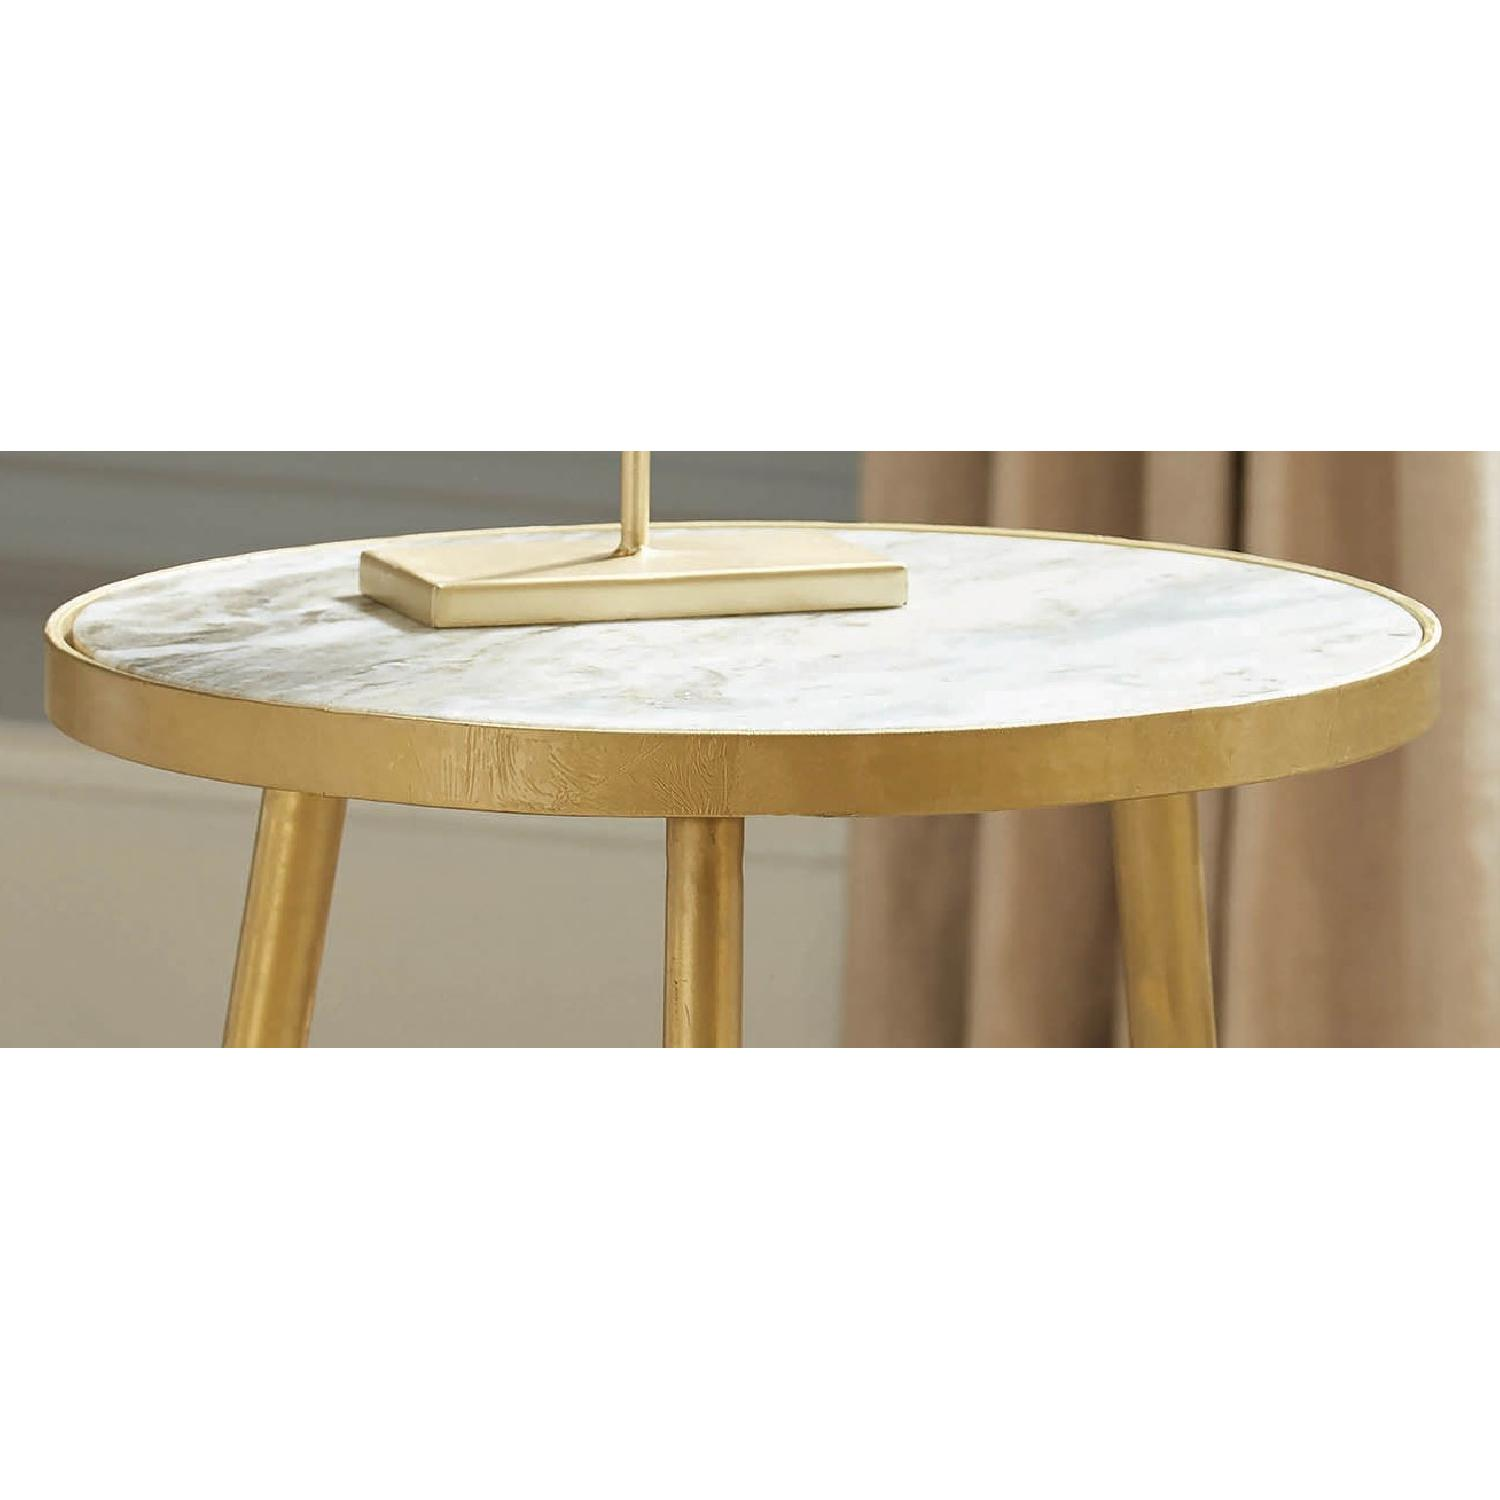 Round Accent Table w/ White Marble Top & Gold Legs